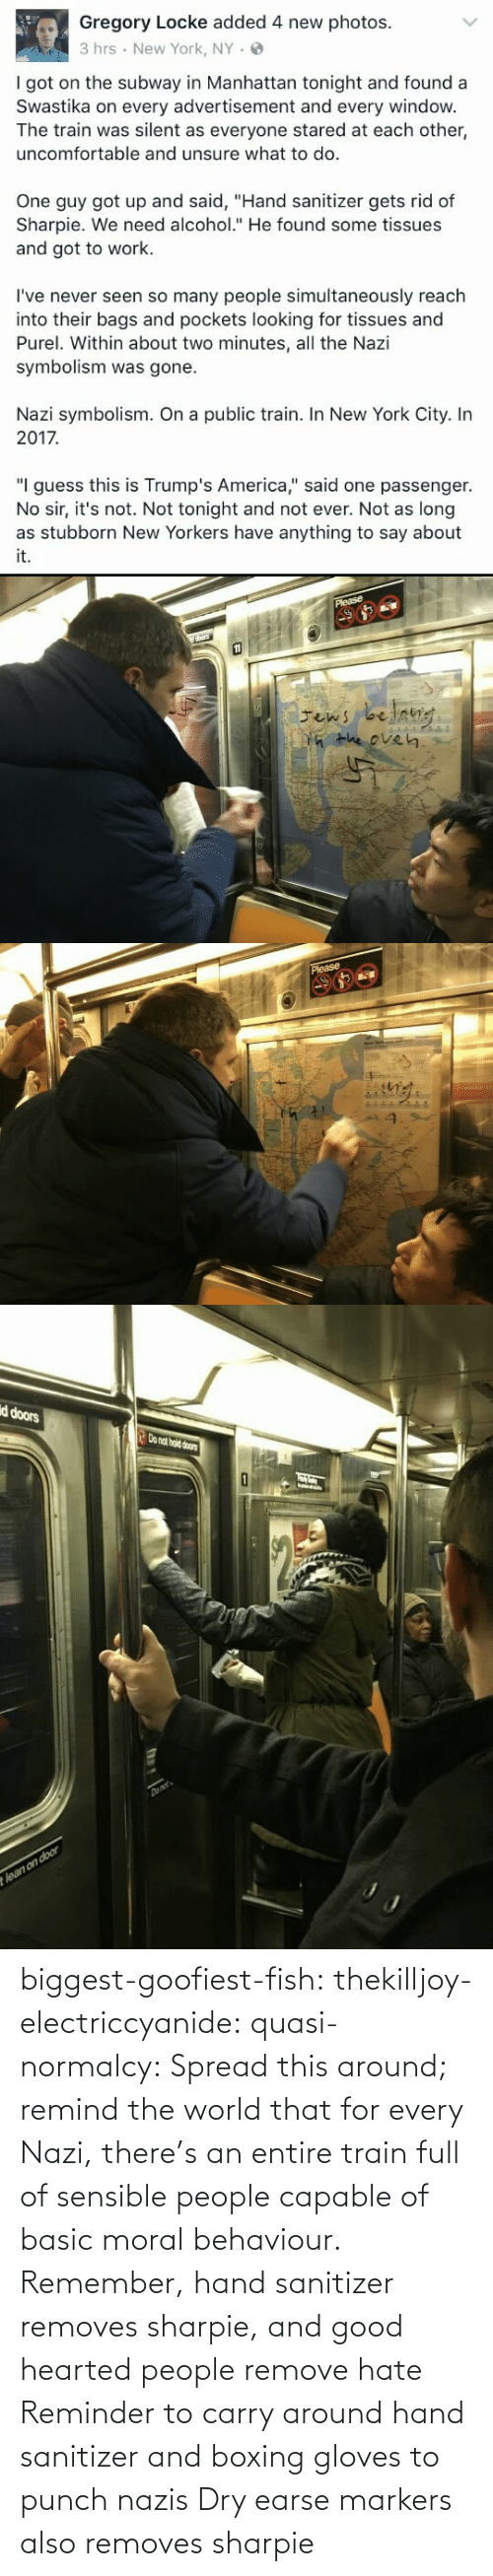 """symbolism: Gregory Locke added 4 new photos.  3 hrs New York, NY.  I got on the subway in Manhattan tonight and found a  Swastika on every advertisement and every windovw  The train was silent as everyone stared at each other,  uncomfortable and unsure what to do.  One guy got up and said, """"Hand sanitizer gets rid of  Sharpie. We need alcohol."""" He found some tissues  and got to work.  I've never seen so many people simultaneously reach  into their bags and pockets looking for tissues and  Purel. Within about two minutes, all the Nazi  symbolism was gone.  Nazi symbolism. On a public train. In New York City. In  2017  """"I guess this is Trump's America,"""" said one passenger.  No sir, it's not. Not tonight and not ever. Not as long  it.   He eve㎏   d doors  o nat hold doors biggest-goofiest-fish:  thekilljoy-electriccyanide:  quasi-normalcy: Spread this around; remind the world that for every Nazi, there's an entire train full of sensible people capable of basic moral behaviour.  Remember, hand sanitizer removes sharpie, and good hearted people remove hate   Reminder to carry around hand sanitizer and boxing gloves to punch nazis    Dry earse markers also removes sharpie"""